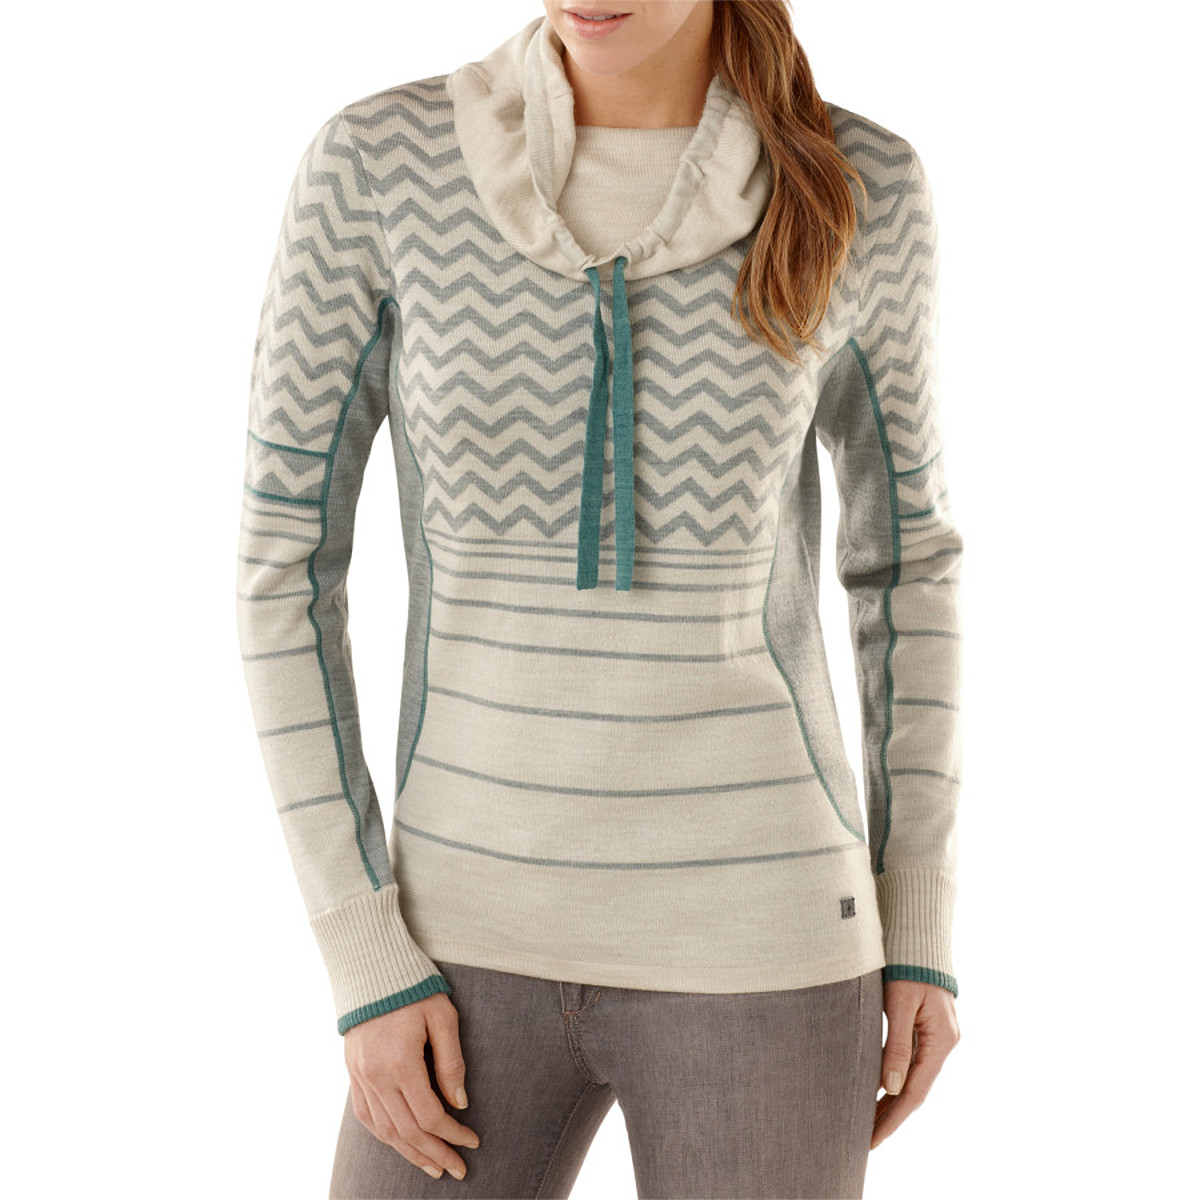 Smartwool Optic Frills Double Knit Pullover Sweater